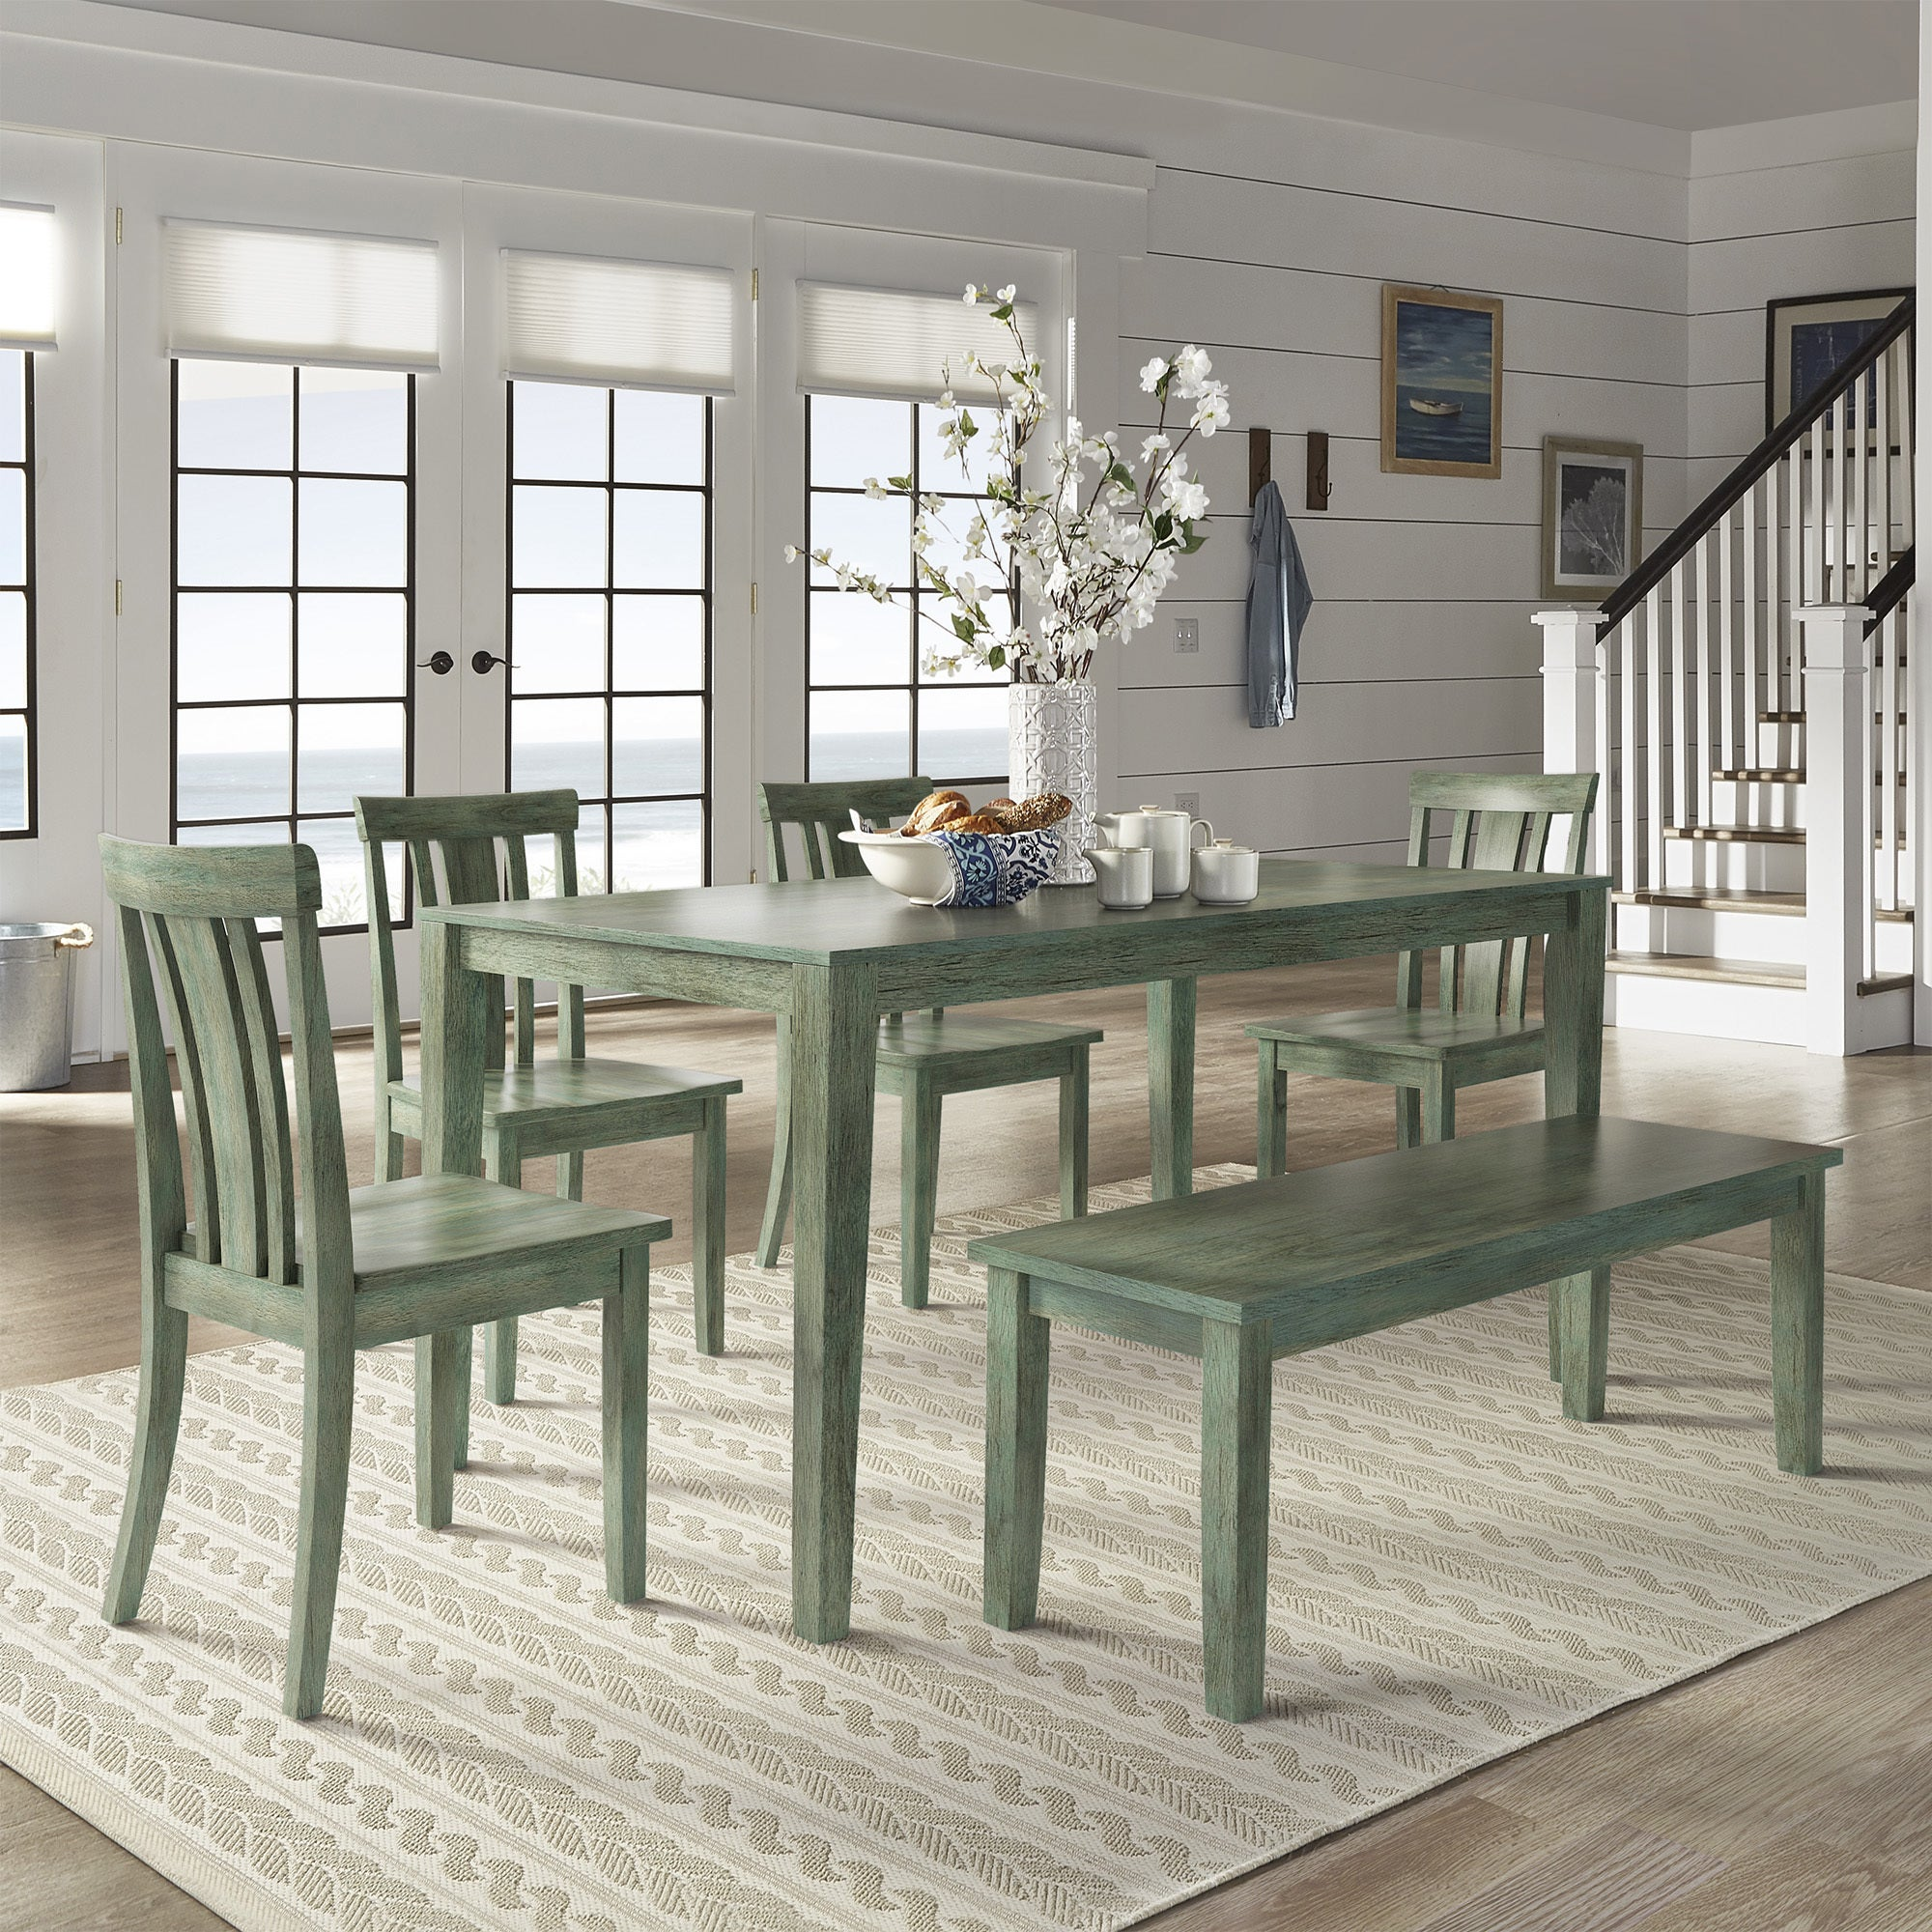 Attractive Wilmington II 60 Inch Rectangular Antique Sage Green Dining Set By INSPIRE  Q Classic   Free Shipping Today   Overstock   24213610